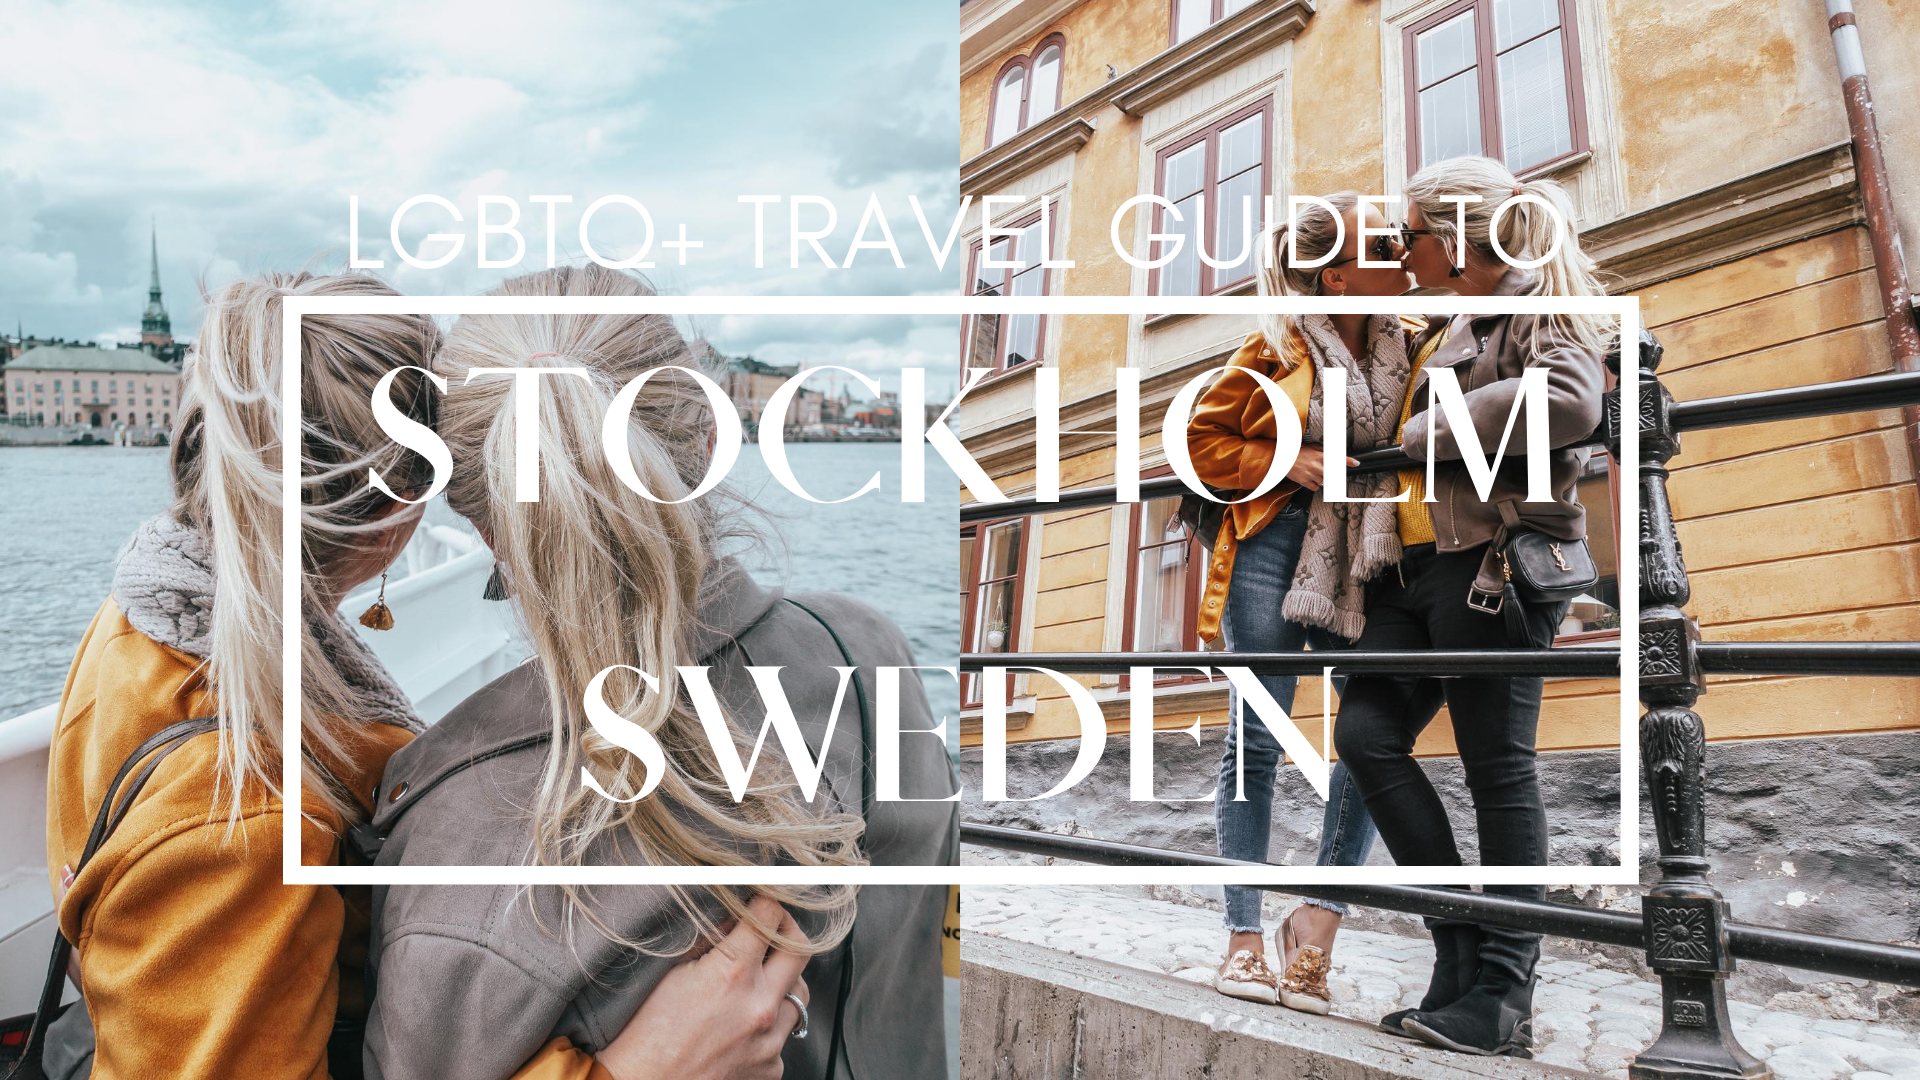 An LGBTQ+ Travel Guide to Stockholm, Sweden